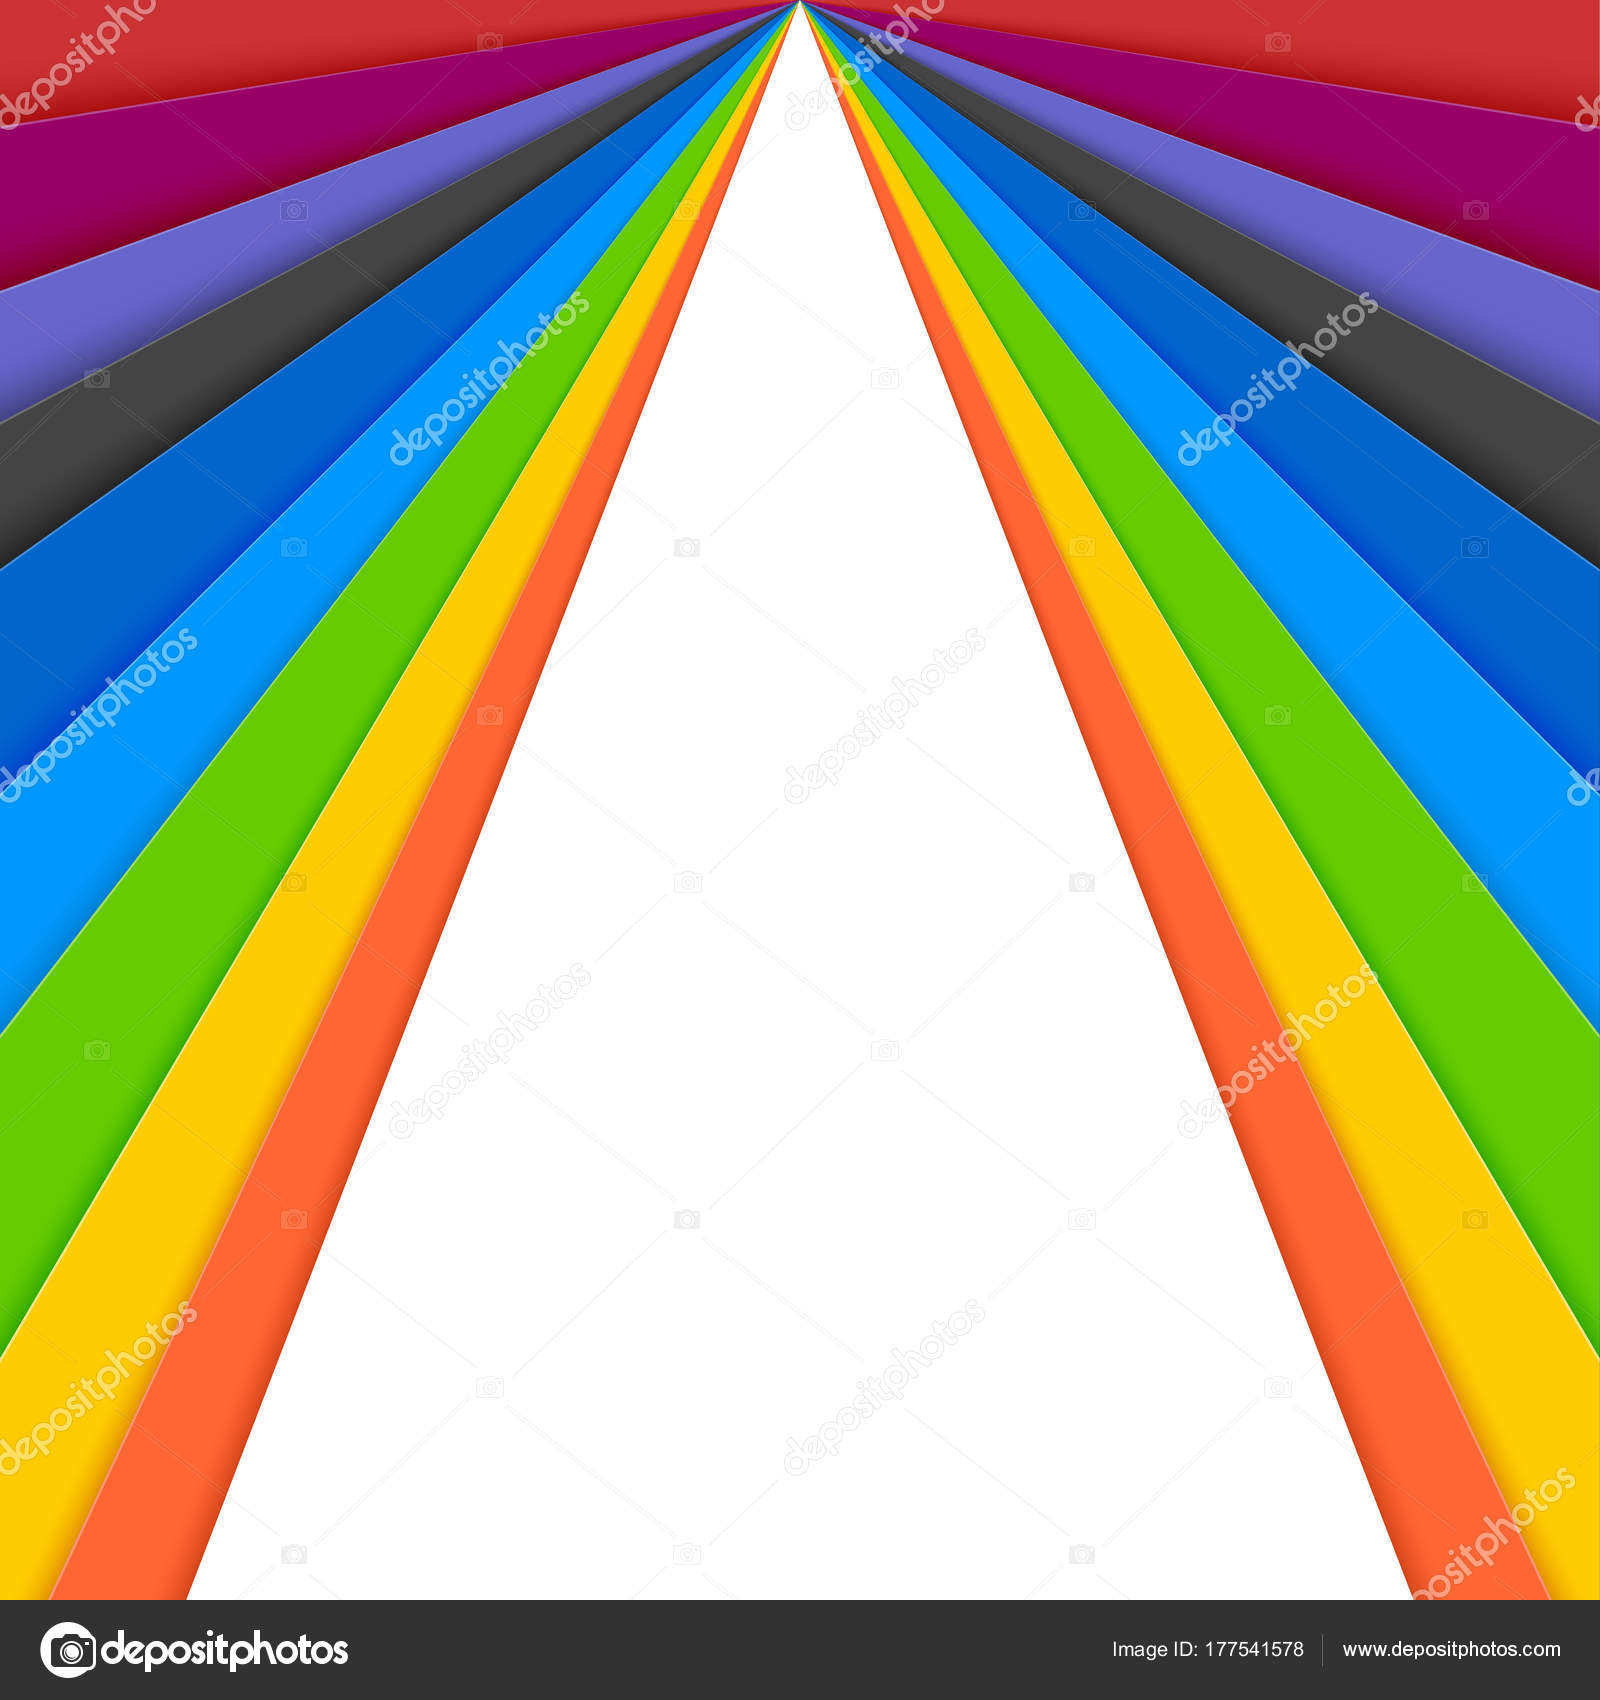 Sheets of colored paper, idea for banner. Layered colorful paper ...